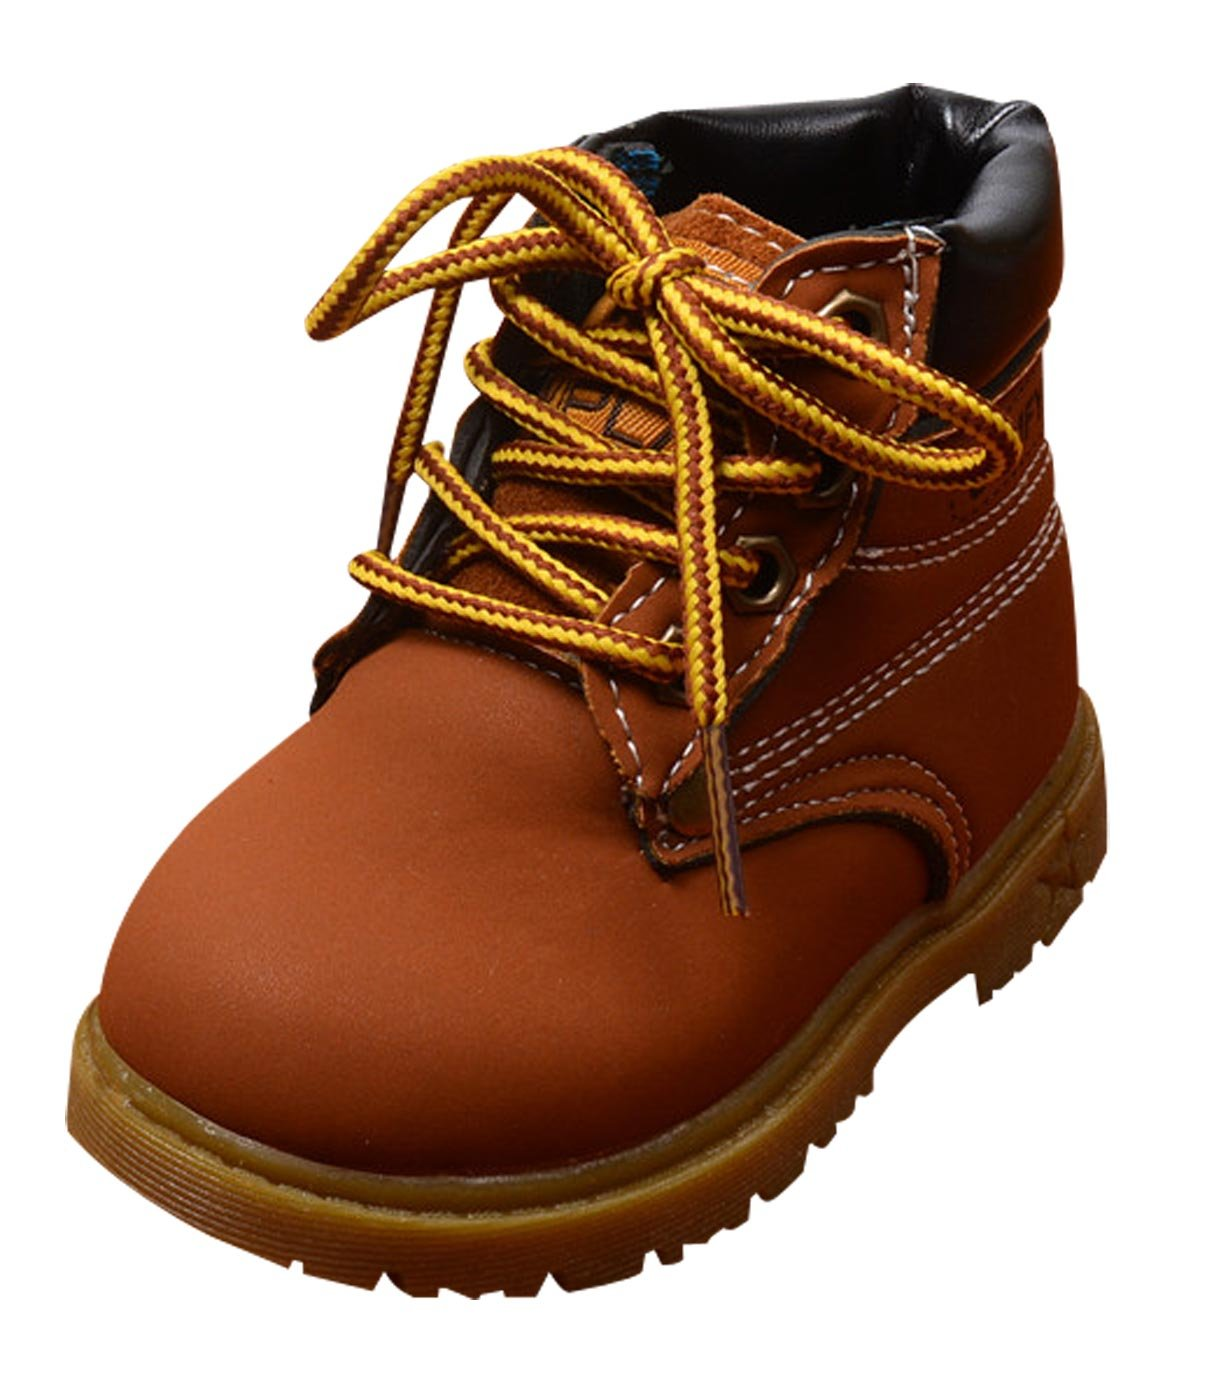 Autumn Combat Boots Children's Casual Boots Kids Keep Warm Martin Snow Boots for Boys Girls Brown 7 M